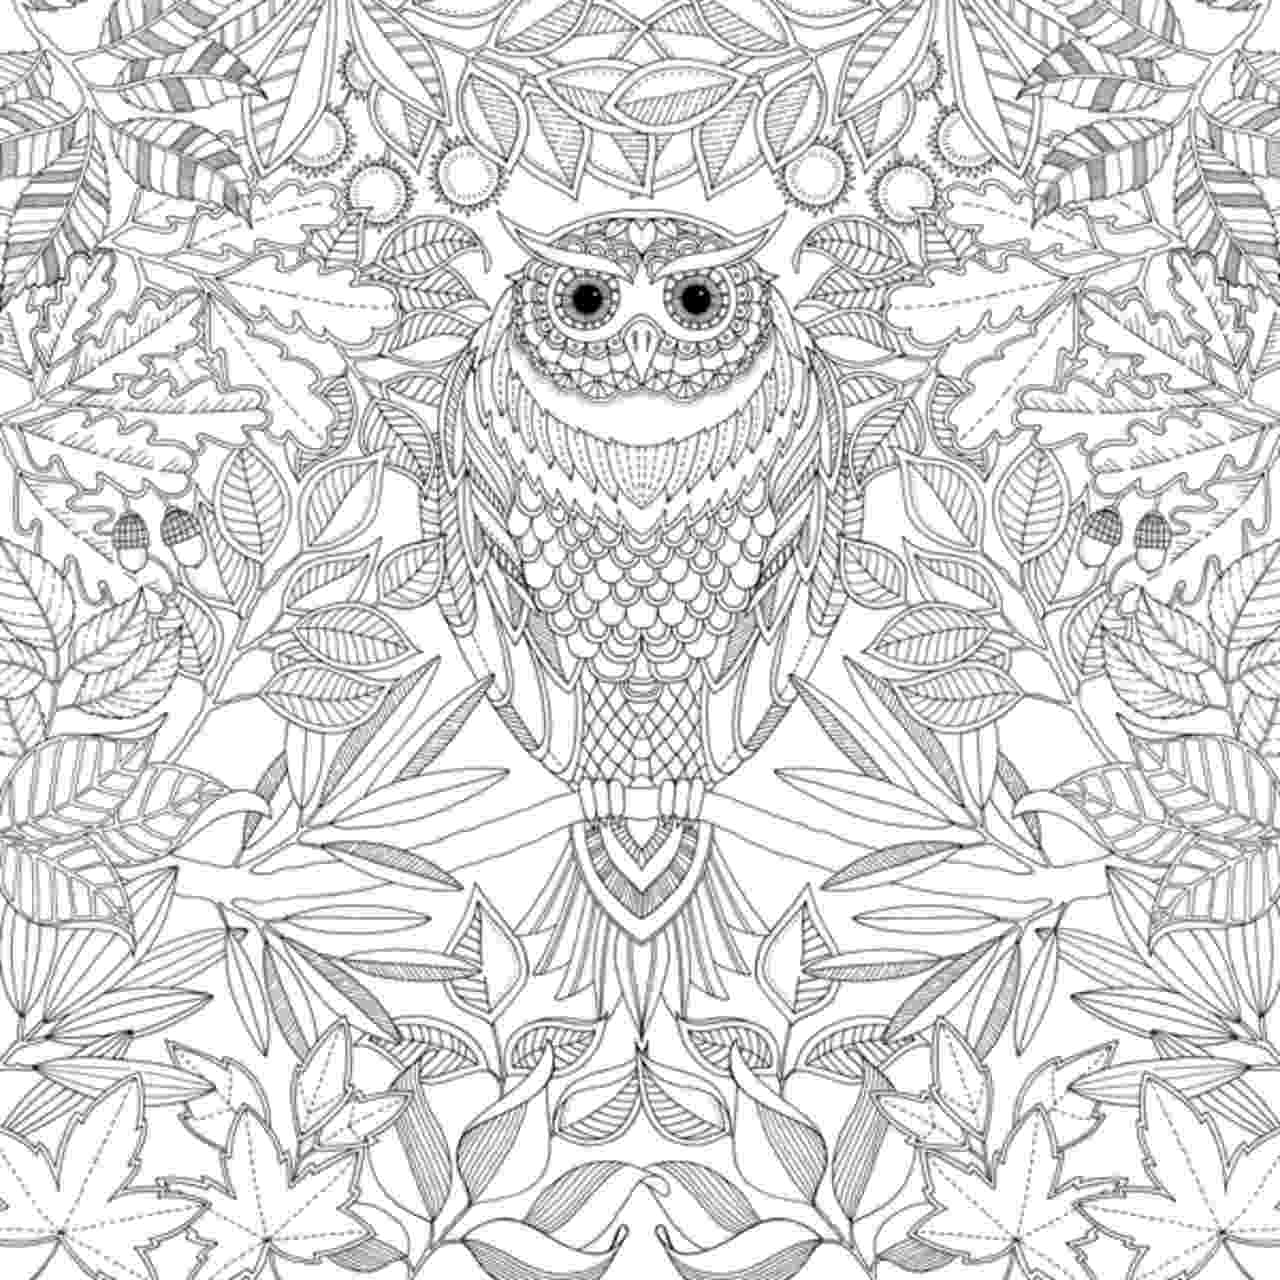 coloring book for adults where to fantasy coloring pages to download and print for free where book to adults coloring for